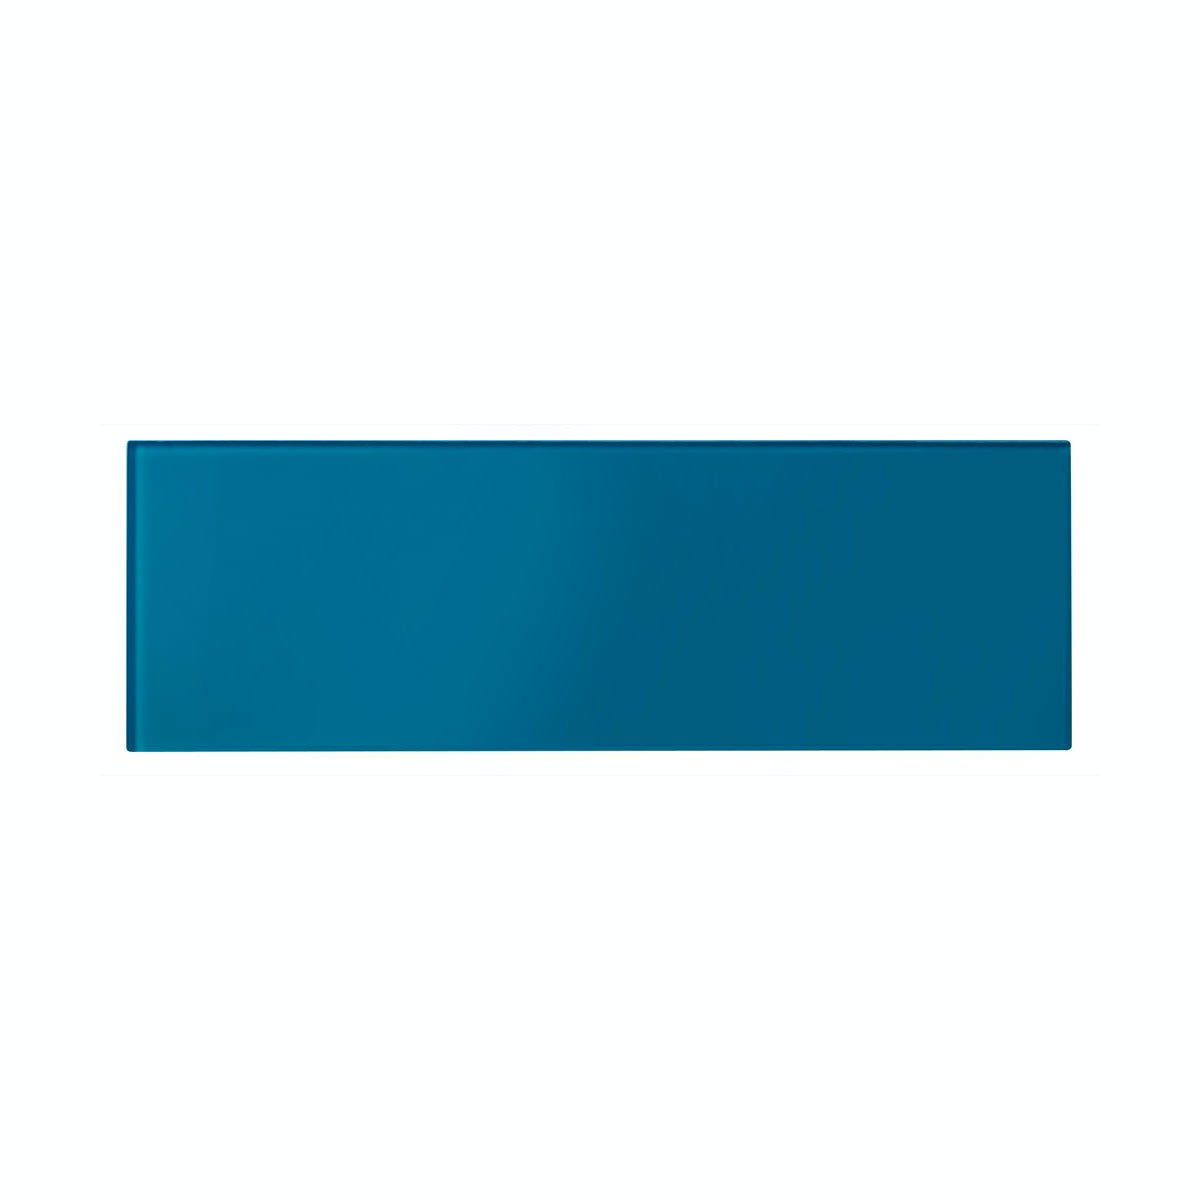 cut out of glass sea blue rectangular tile